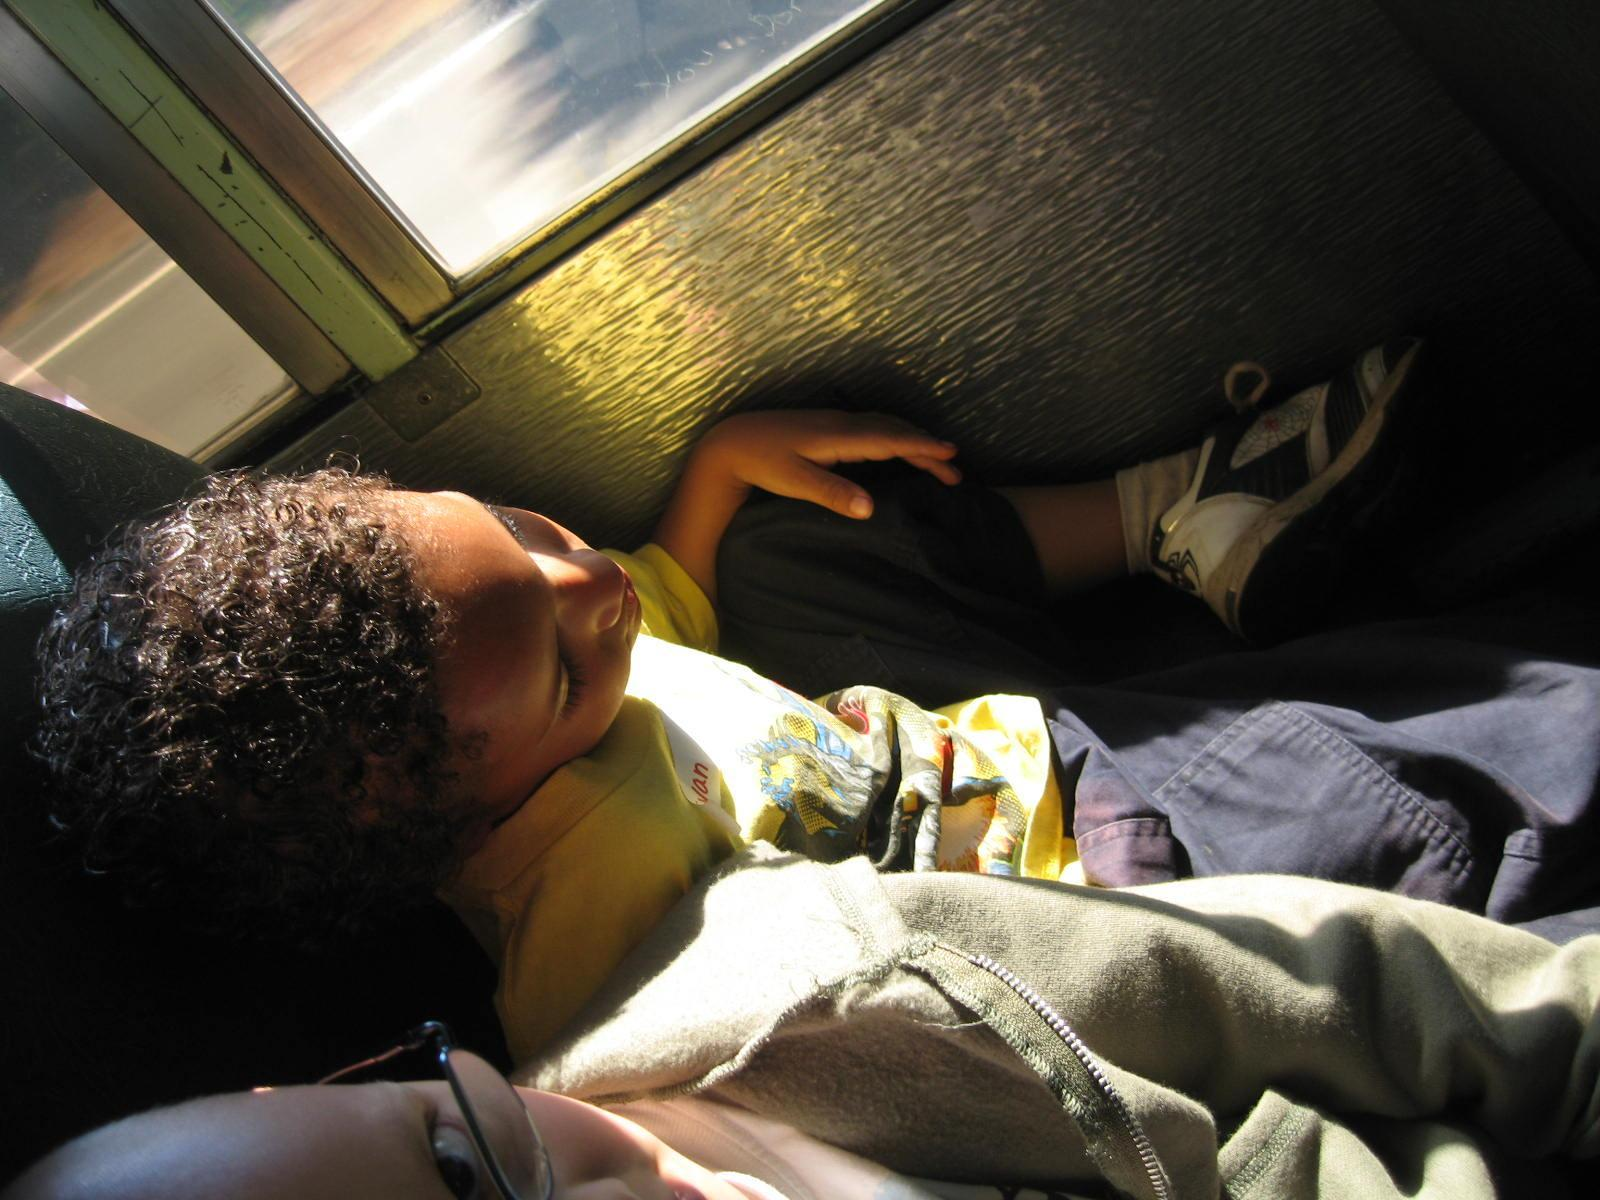 Student on the Bus